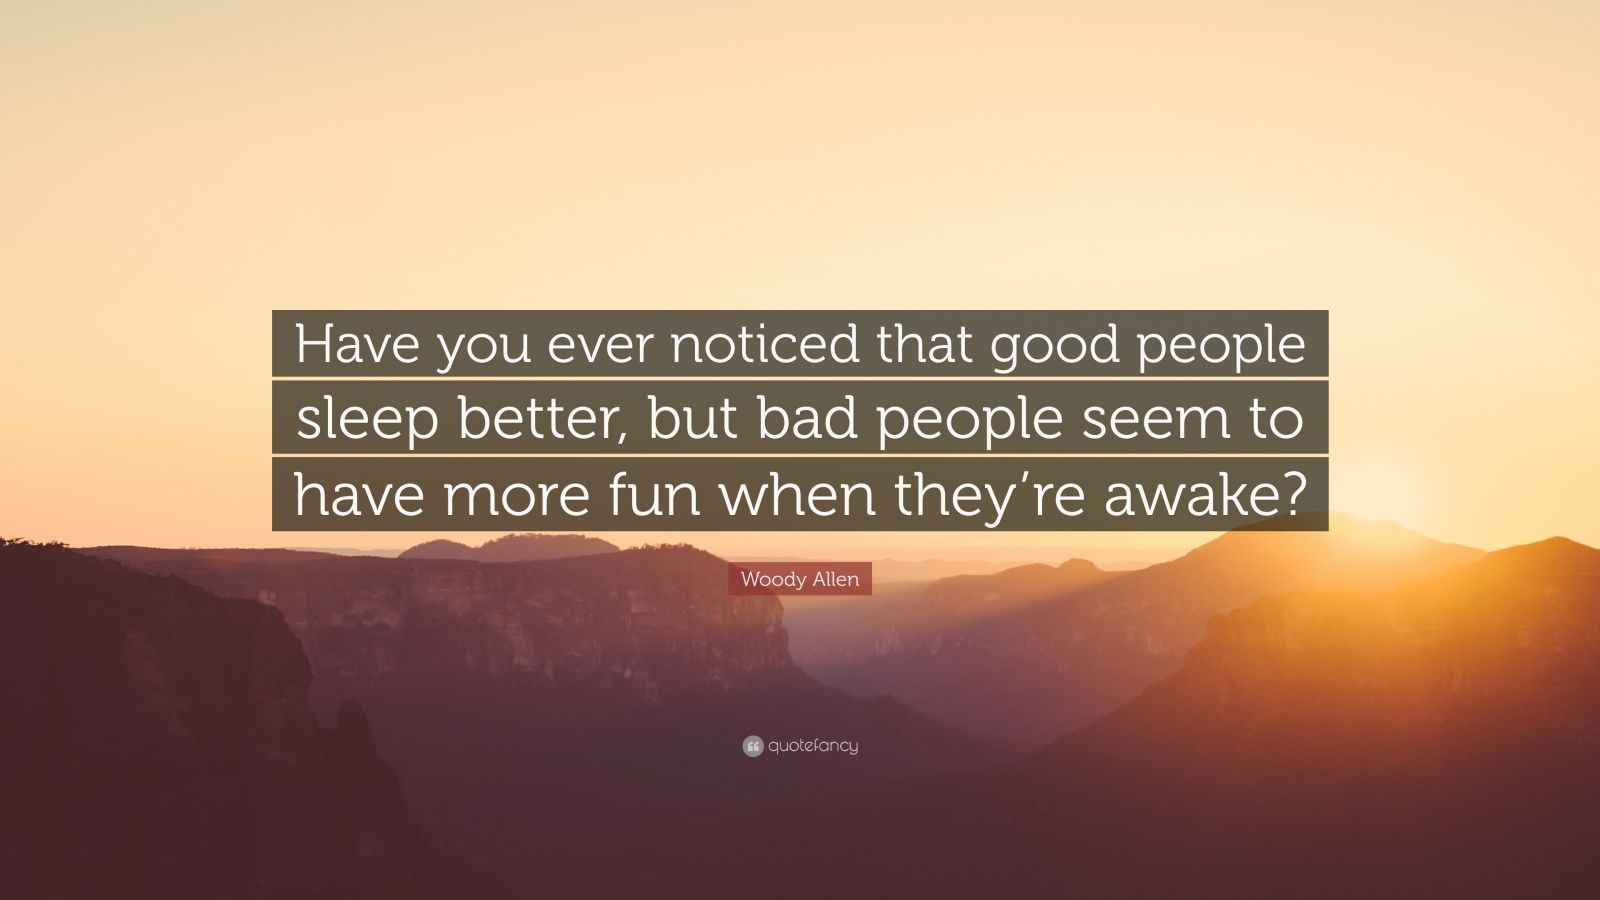 """Woody Allen Quote: """"Have you ever noticed that good people sleep better, but bad people seem to have more fun when they're awake?"""""""